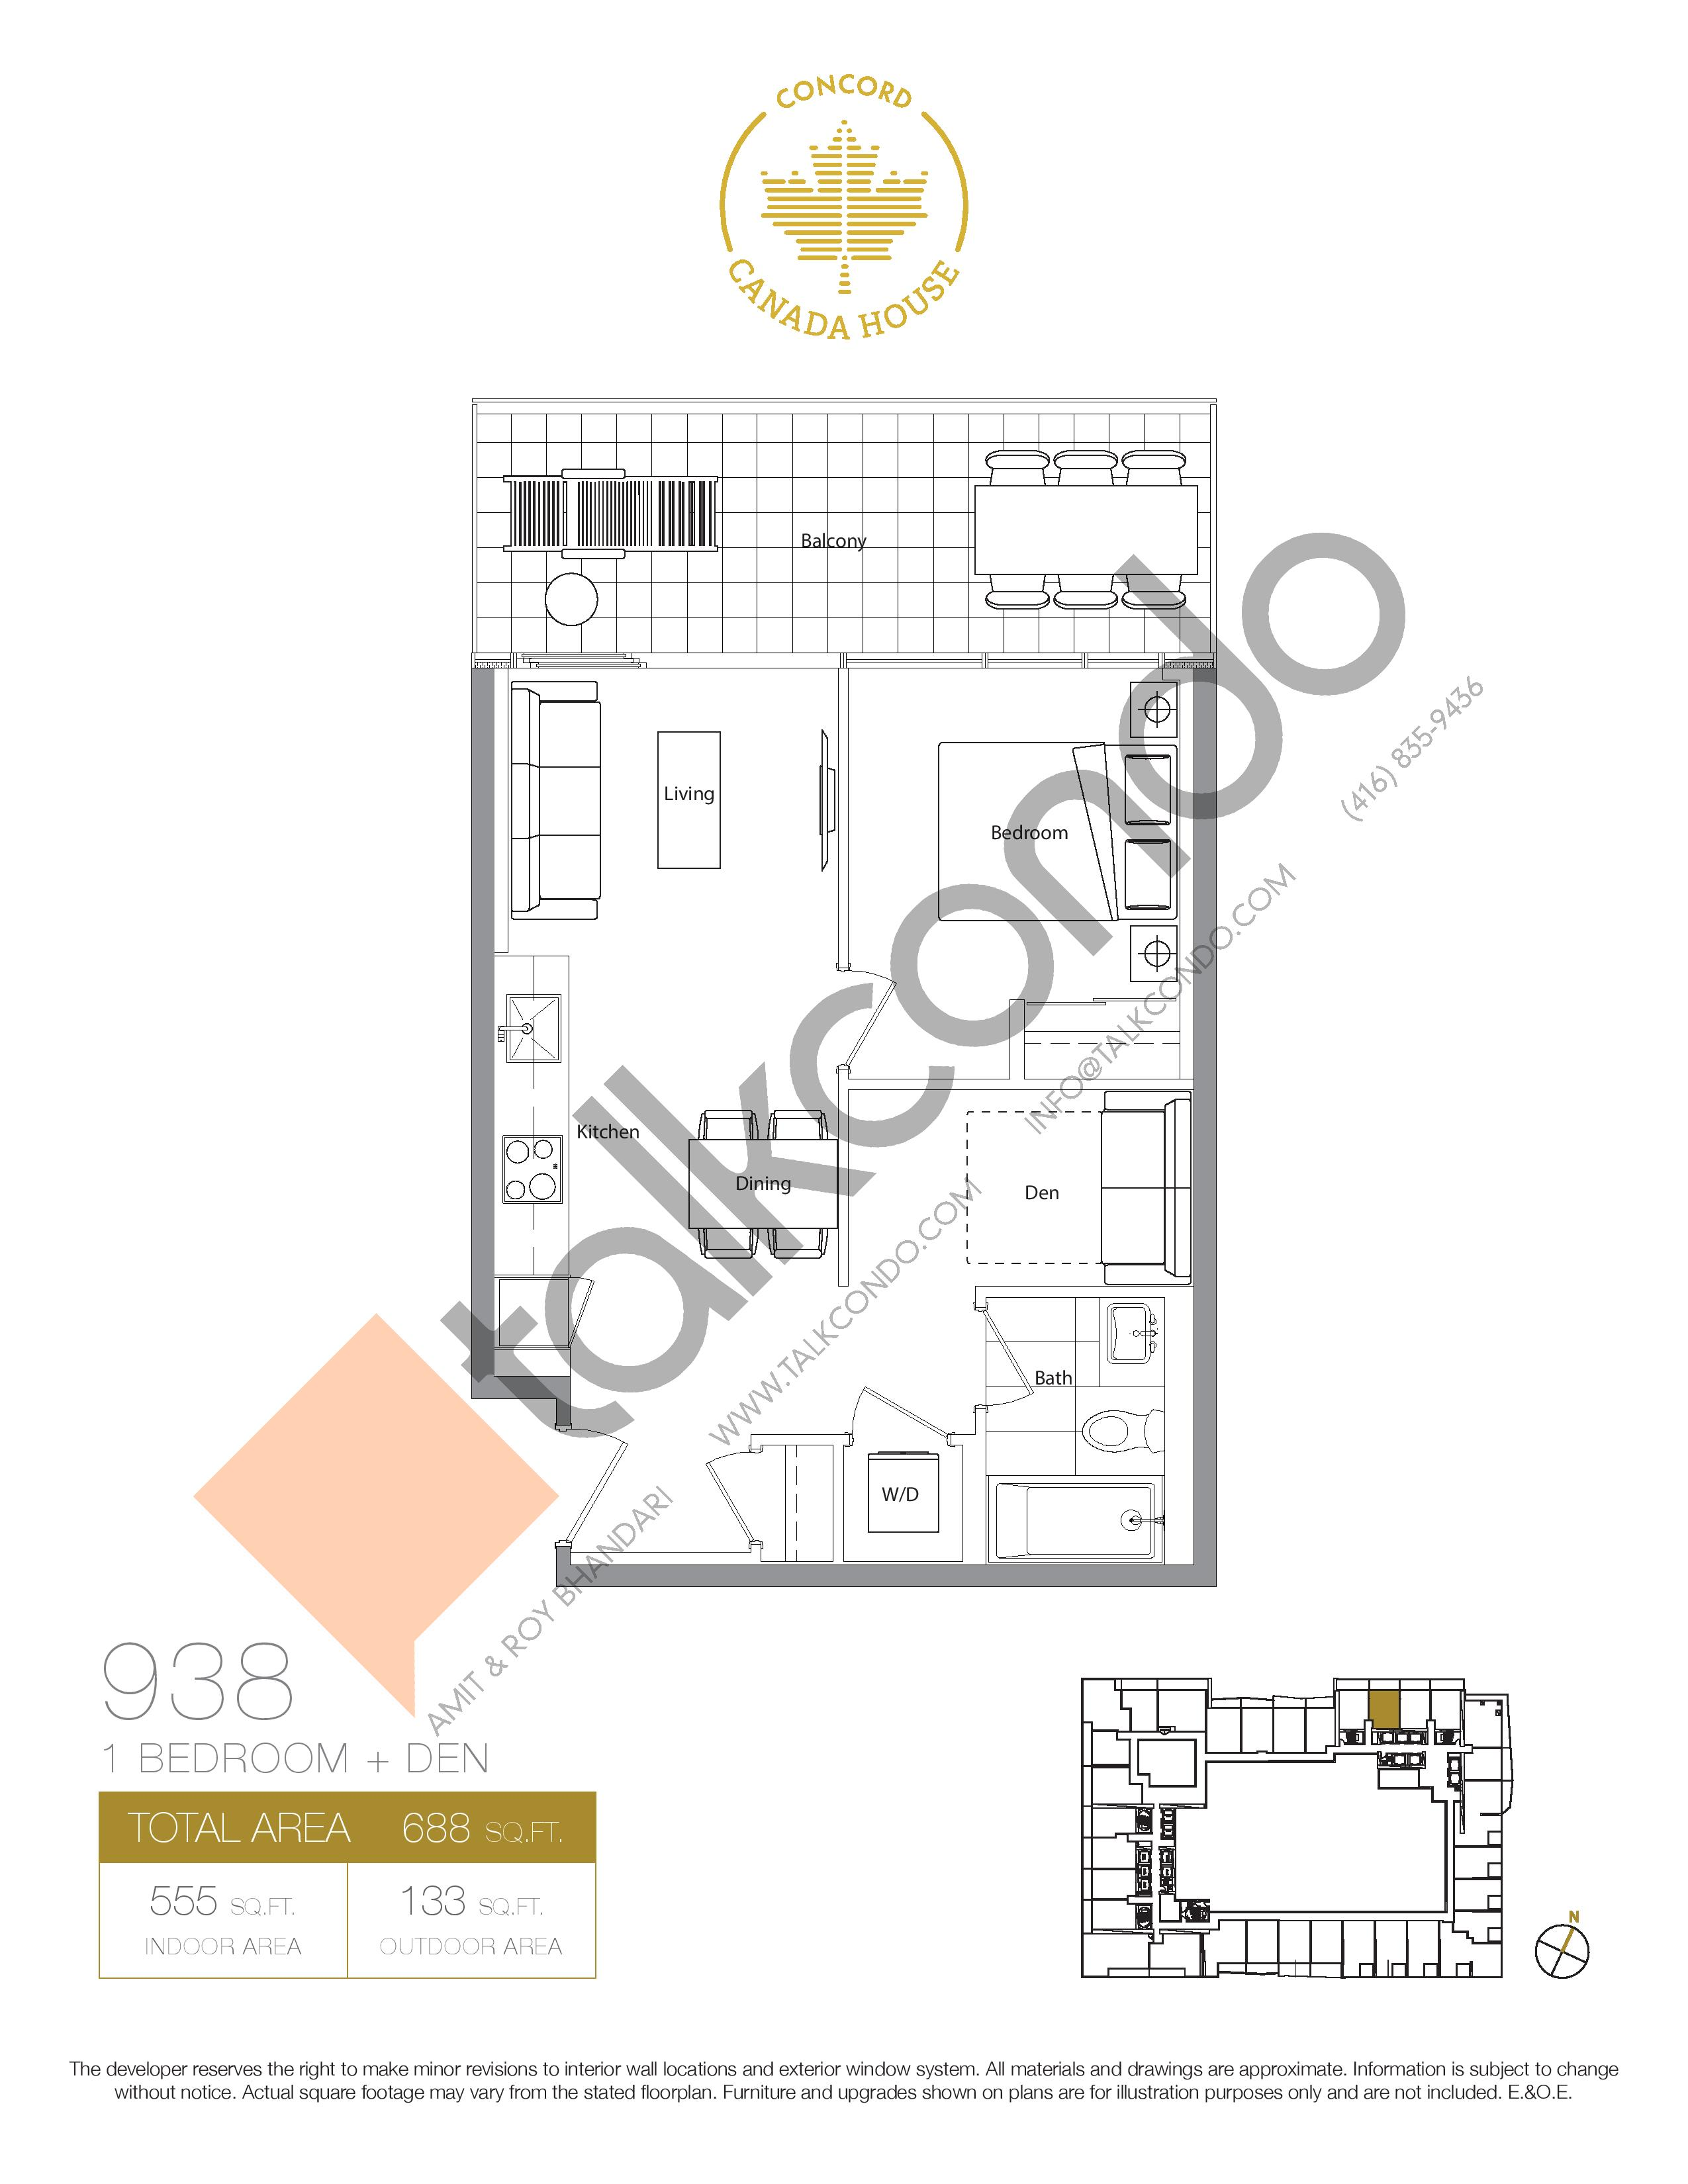 938 (Podium) Floor Plan at Concord Canada House Condos - 555 sq.ft